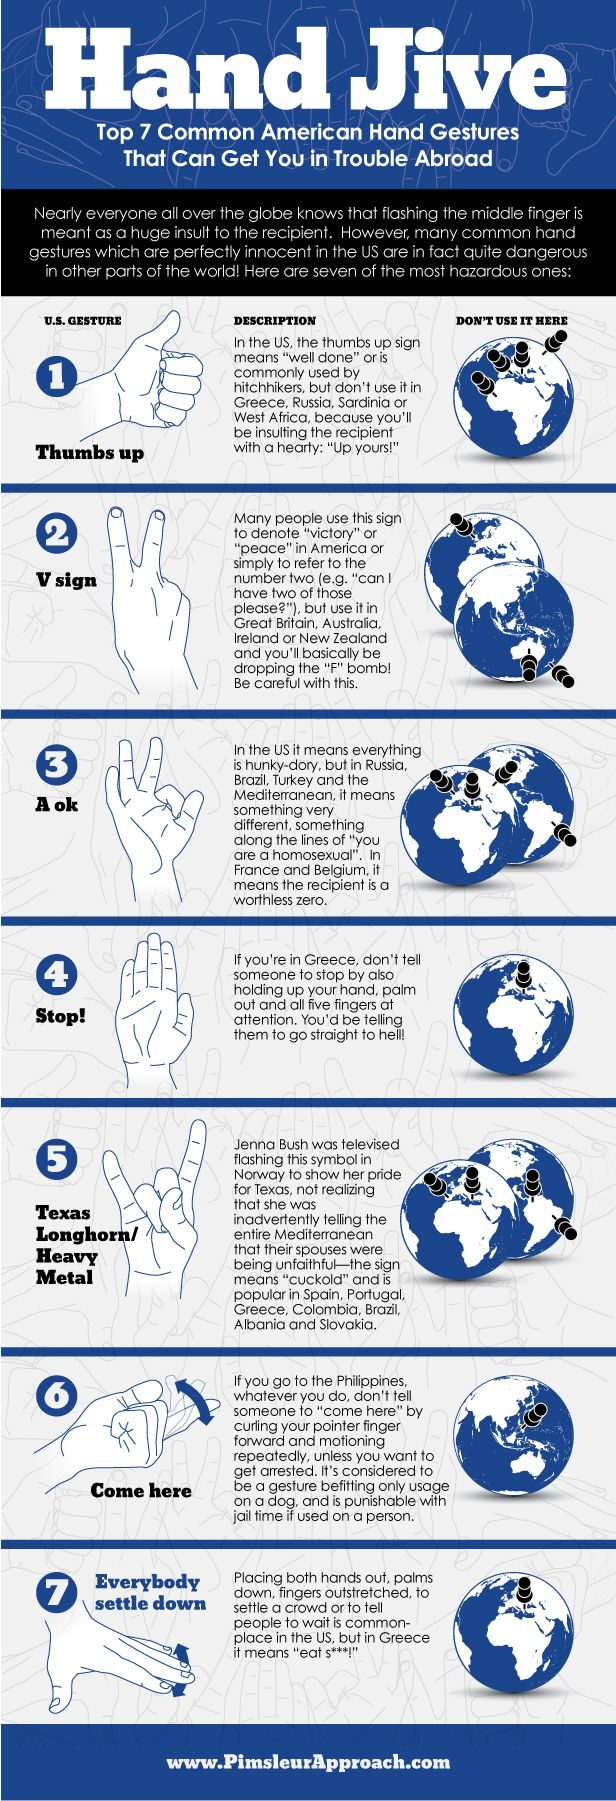 Top 7 American hand gestures that can get you into trouble abroad.